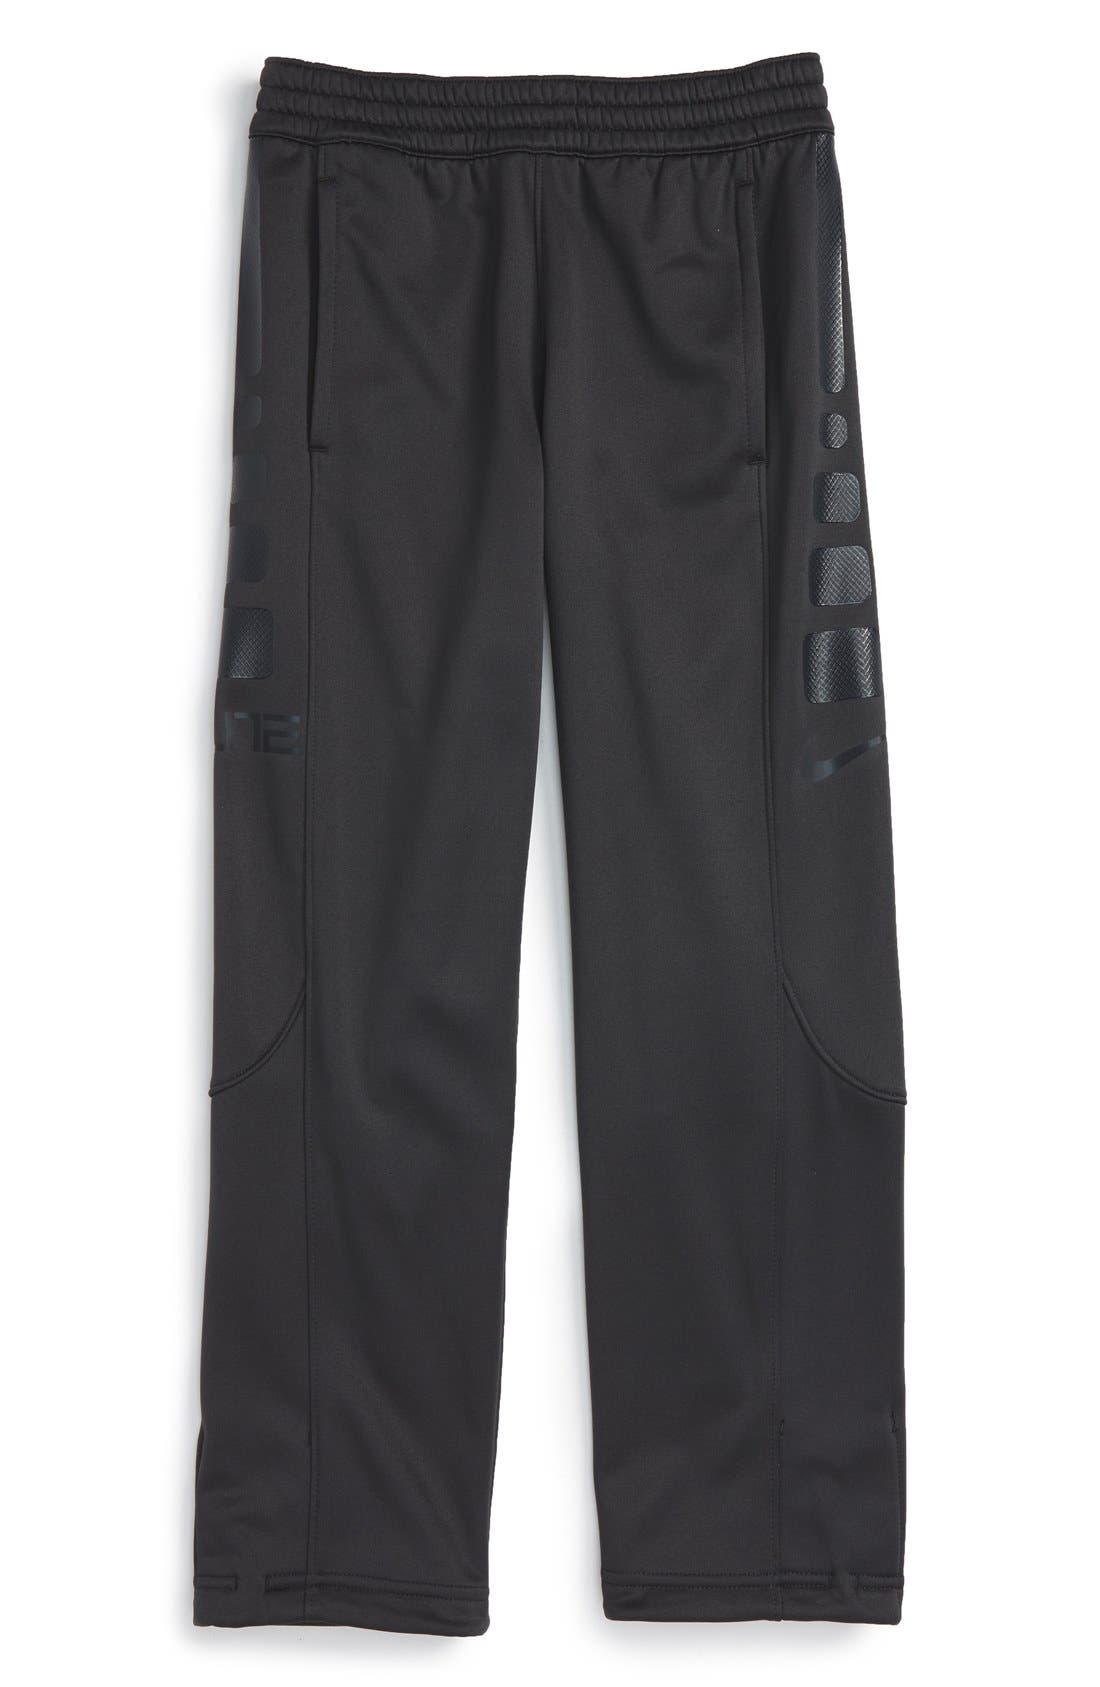 'Elite' Therma-FIT Pants,                             Main thumbnail 1, color,                             Antrhacite/ Black